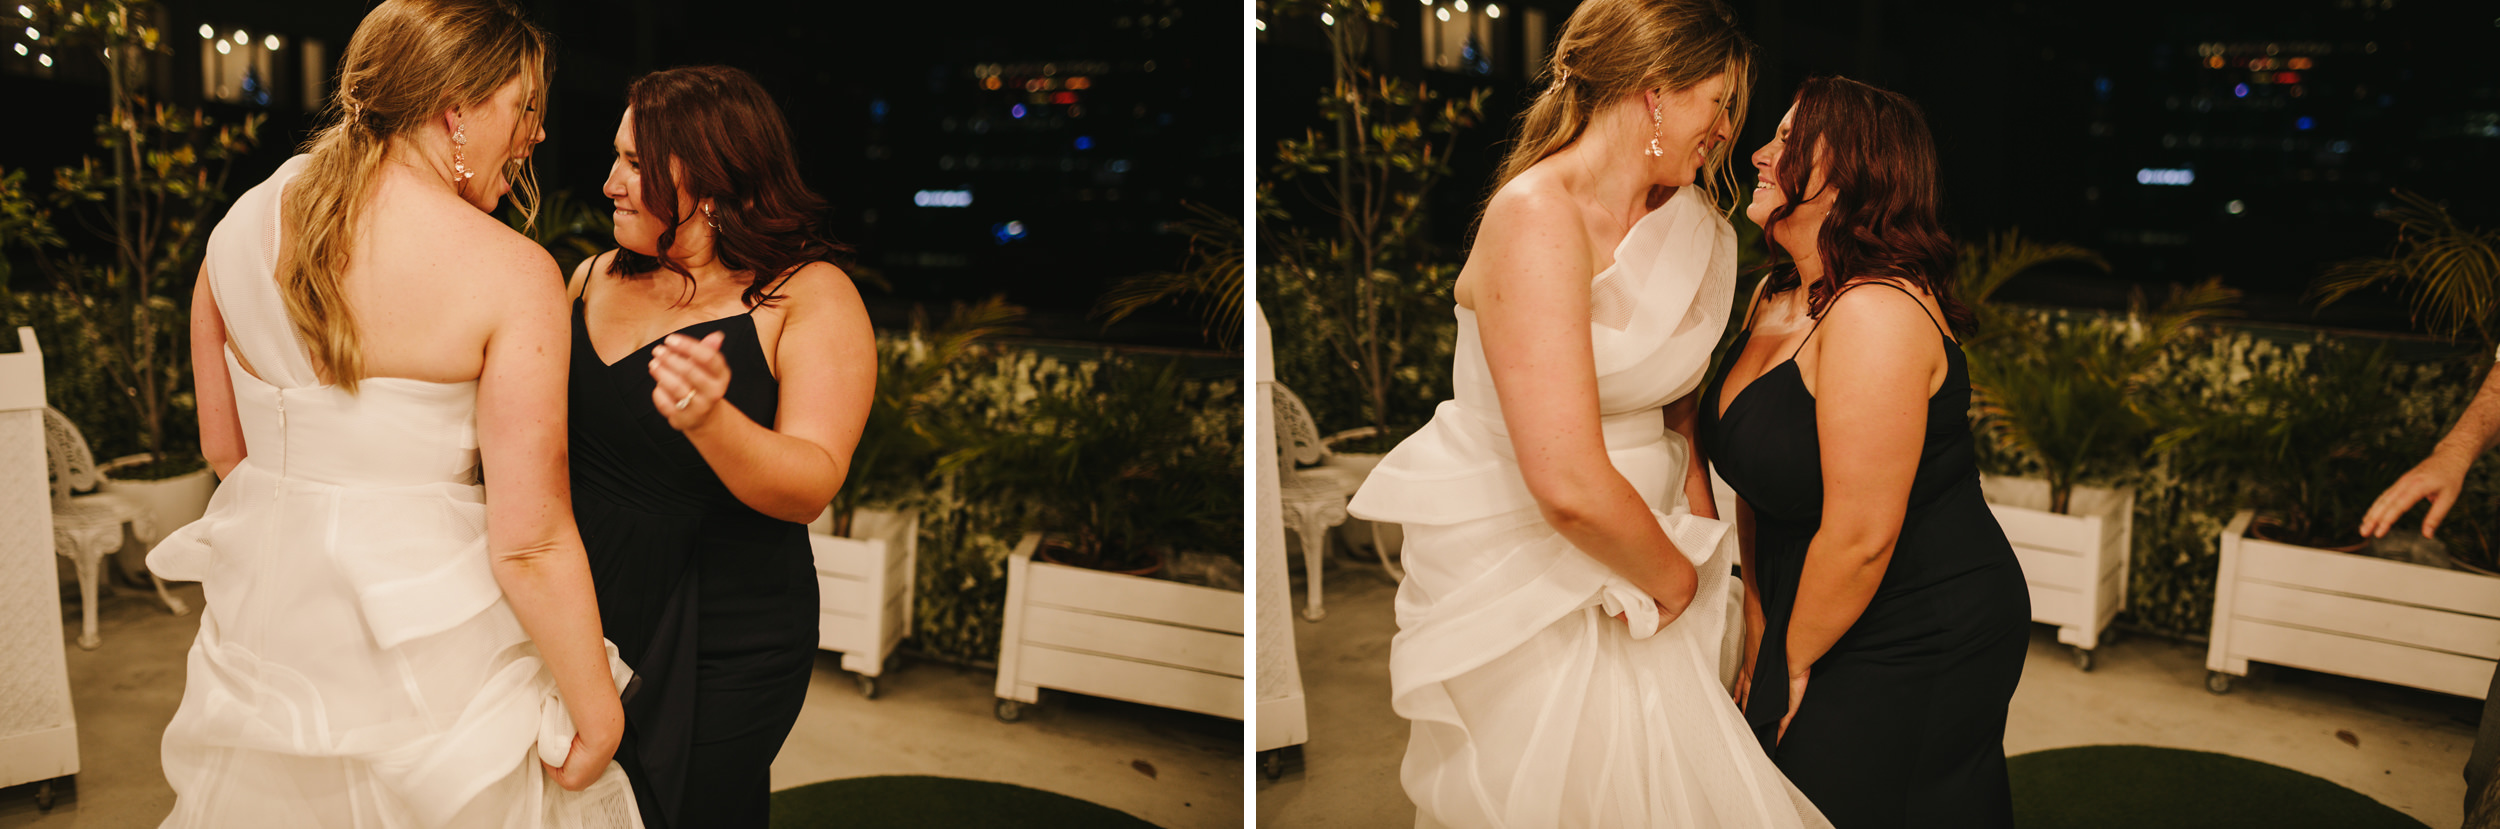 Melbourne_City_Rooftop_Wedding_Tyson_Brigette143.JPG